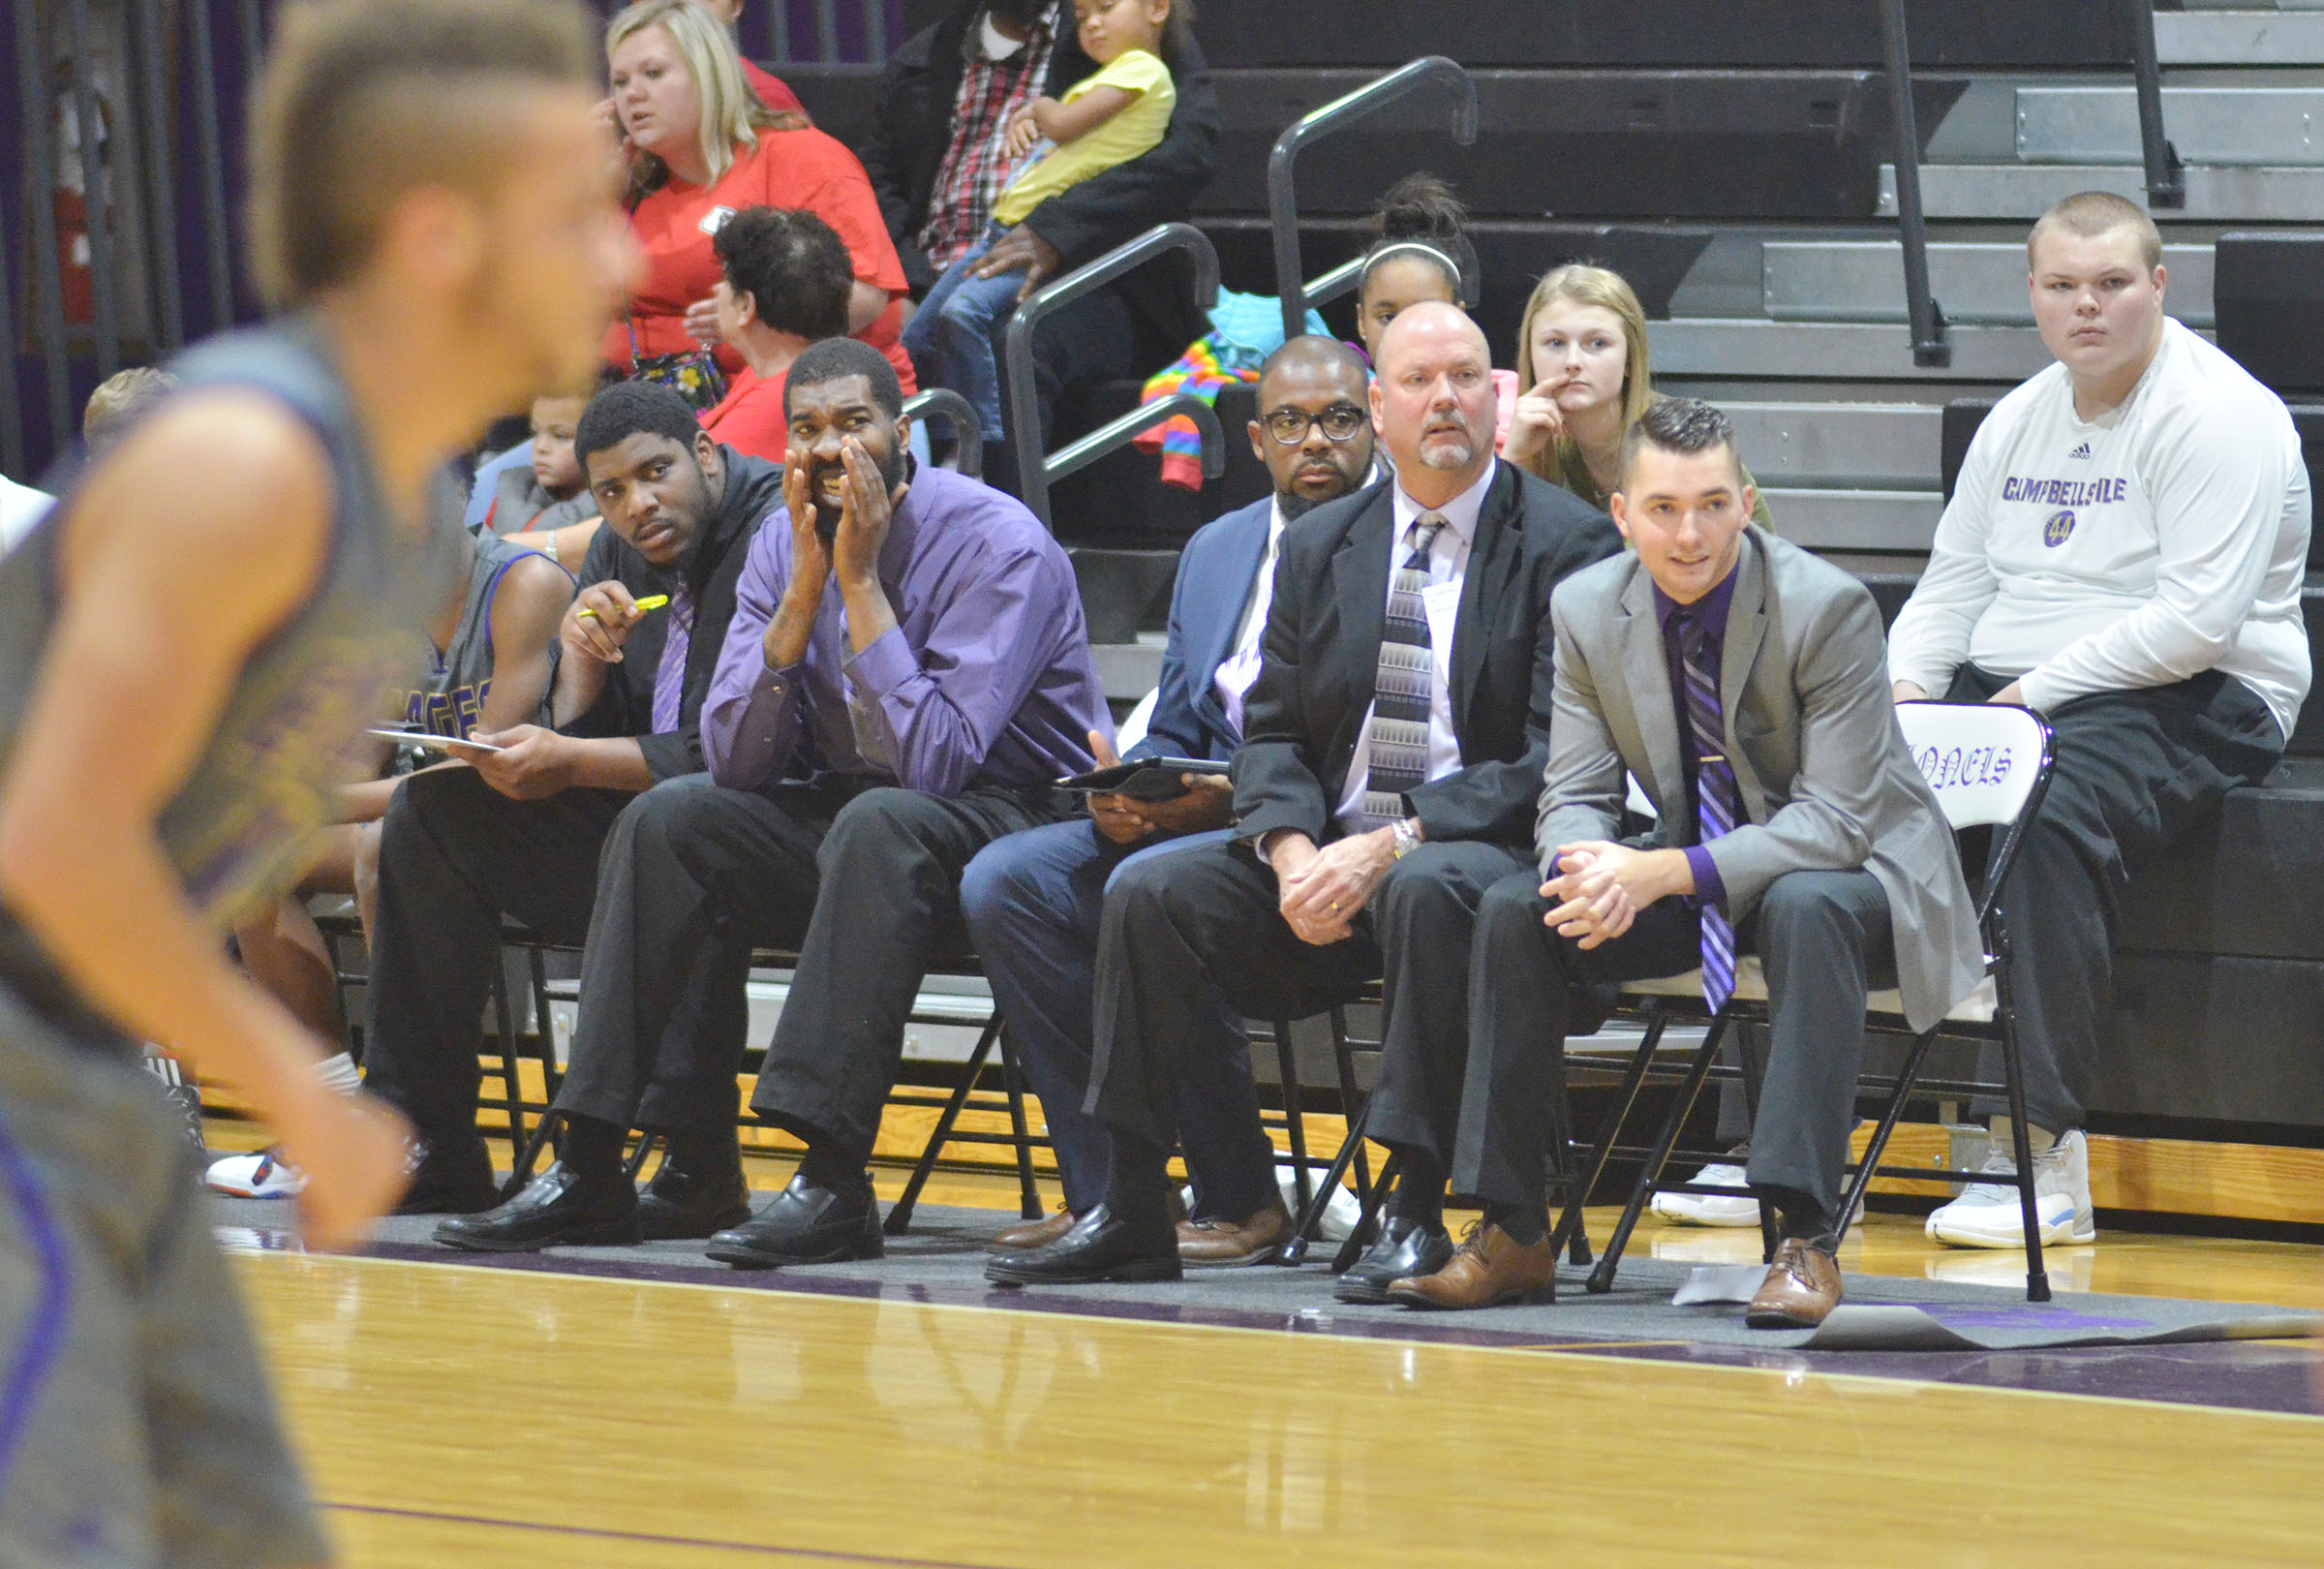 CHS boys' basketball coaches watch from the sidelines.